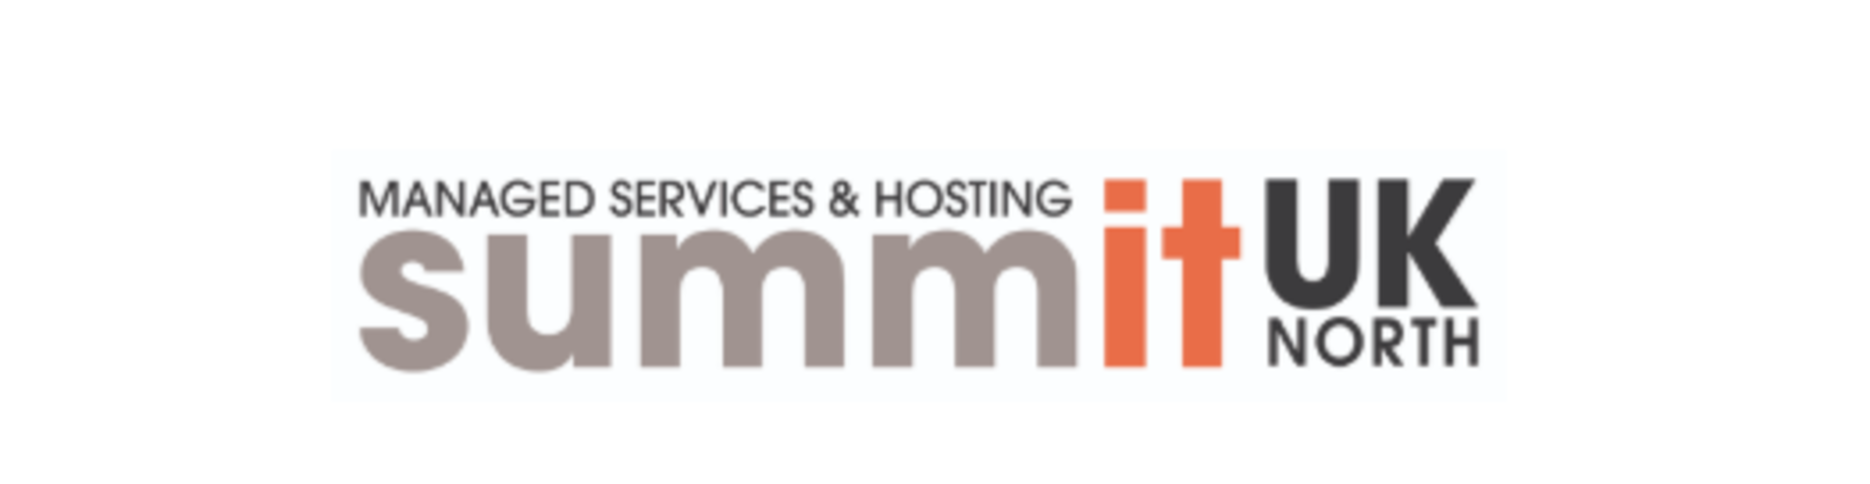 Managed Services and Hosting Summit UK North 2019